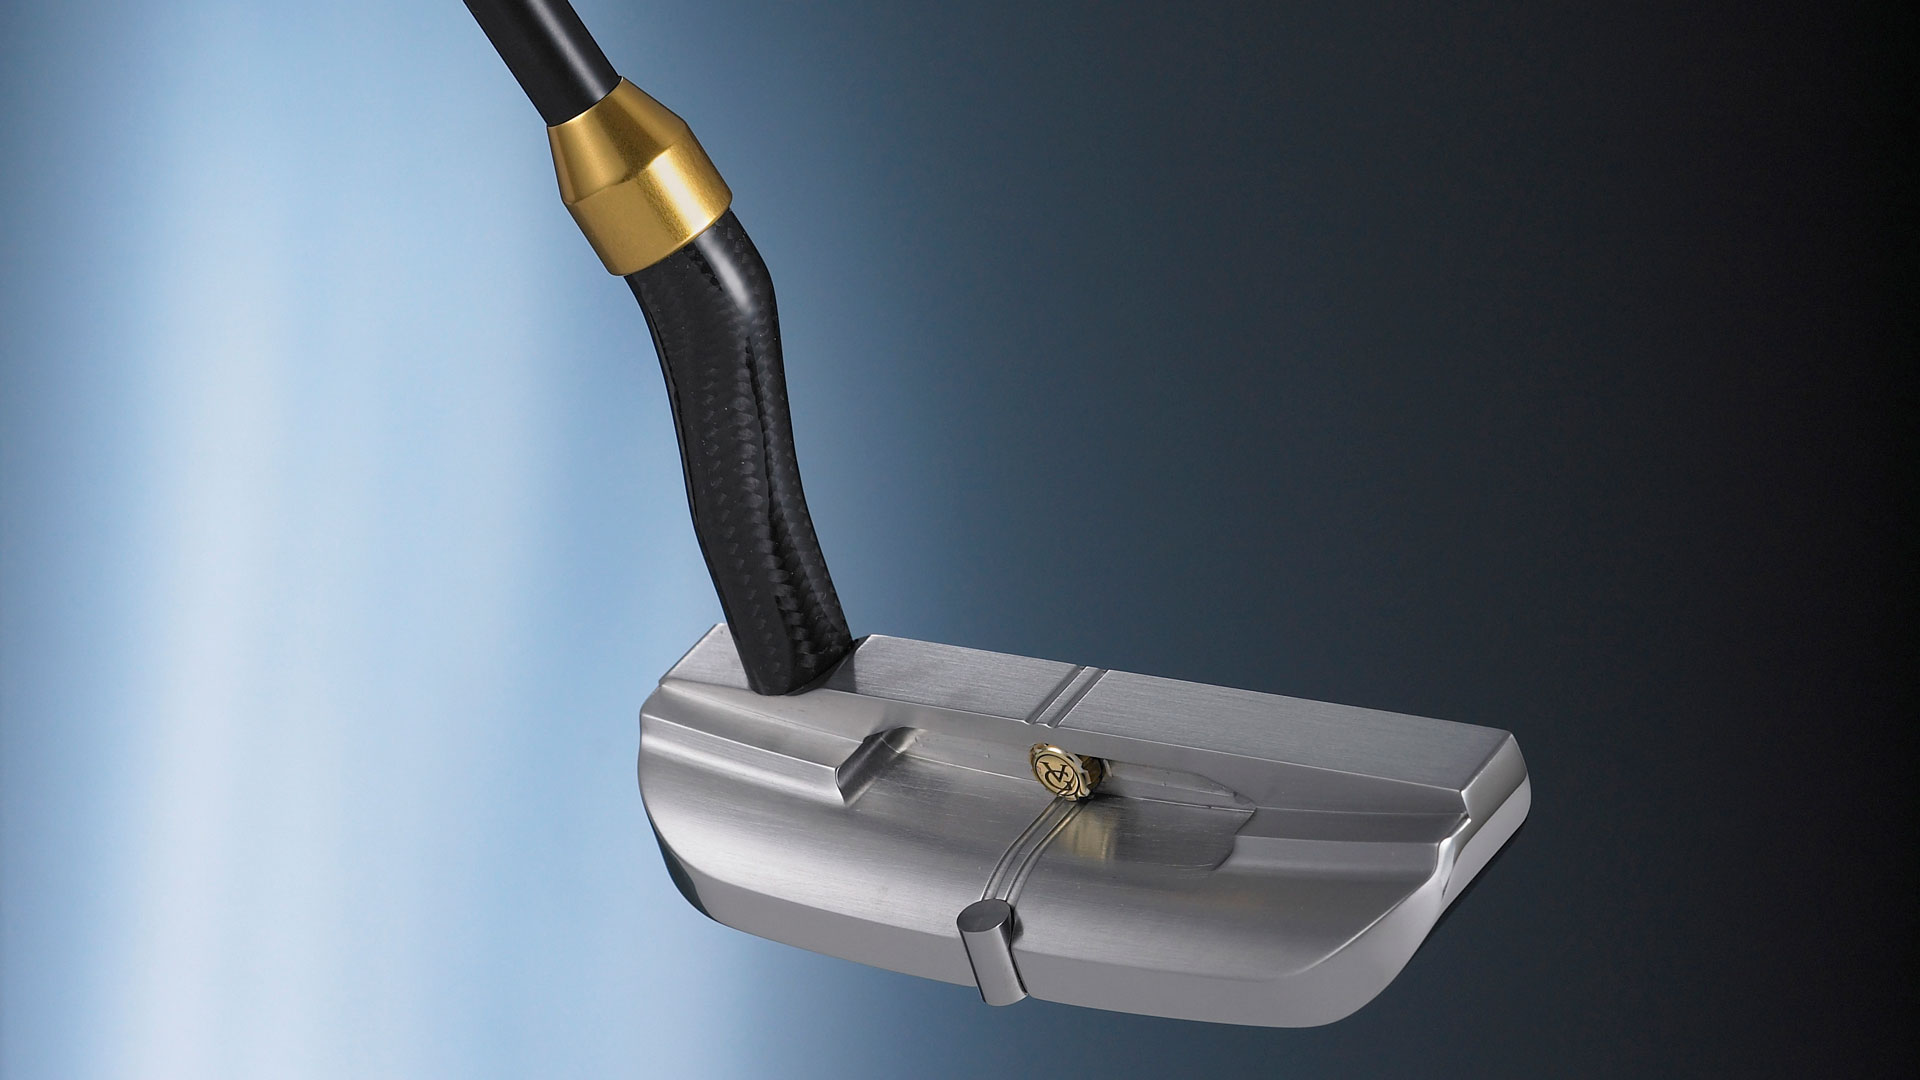 luxury putters by Valgrine a up close shot of a putter